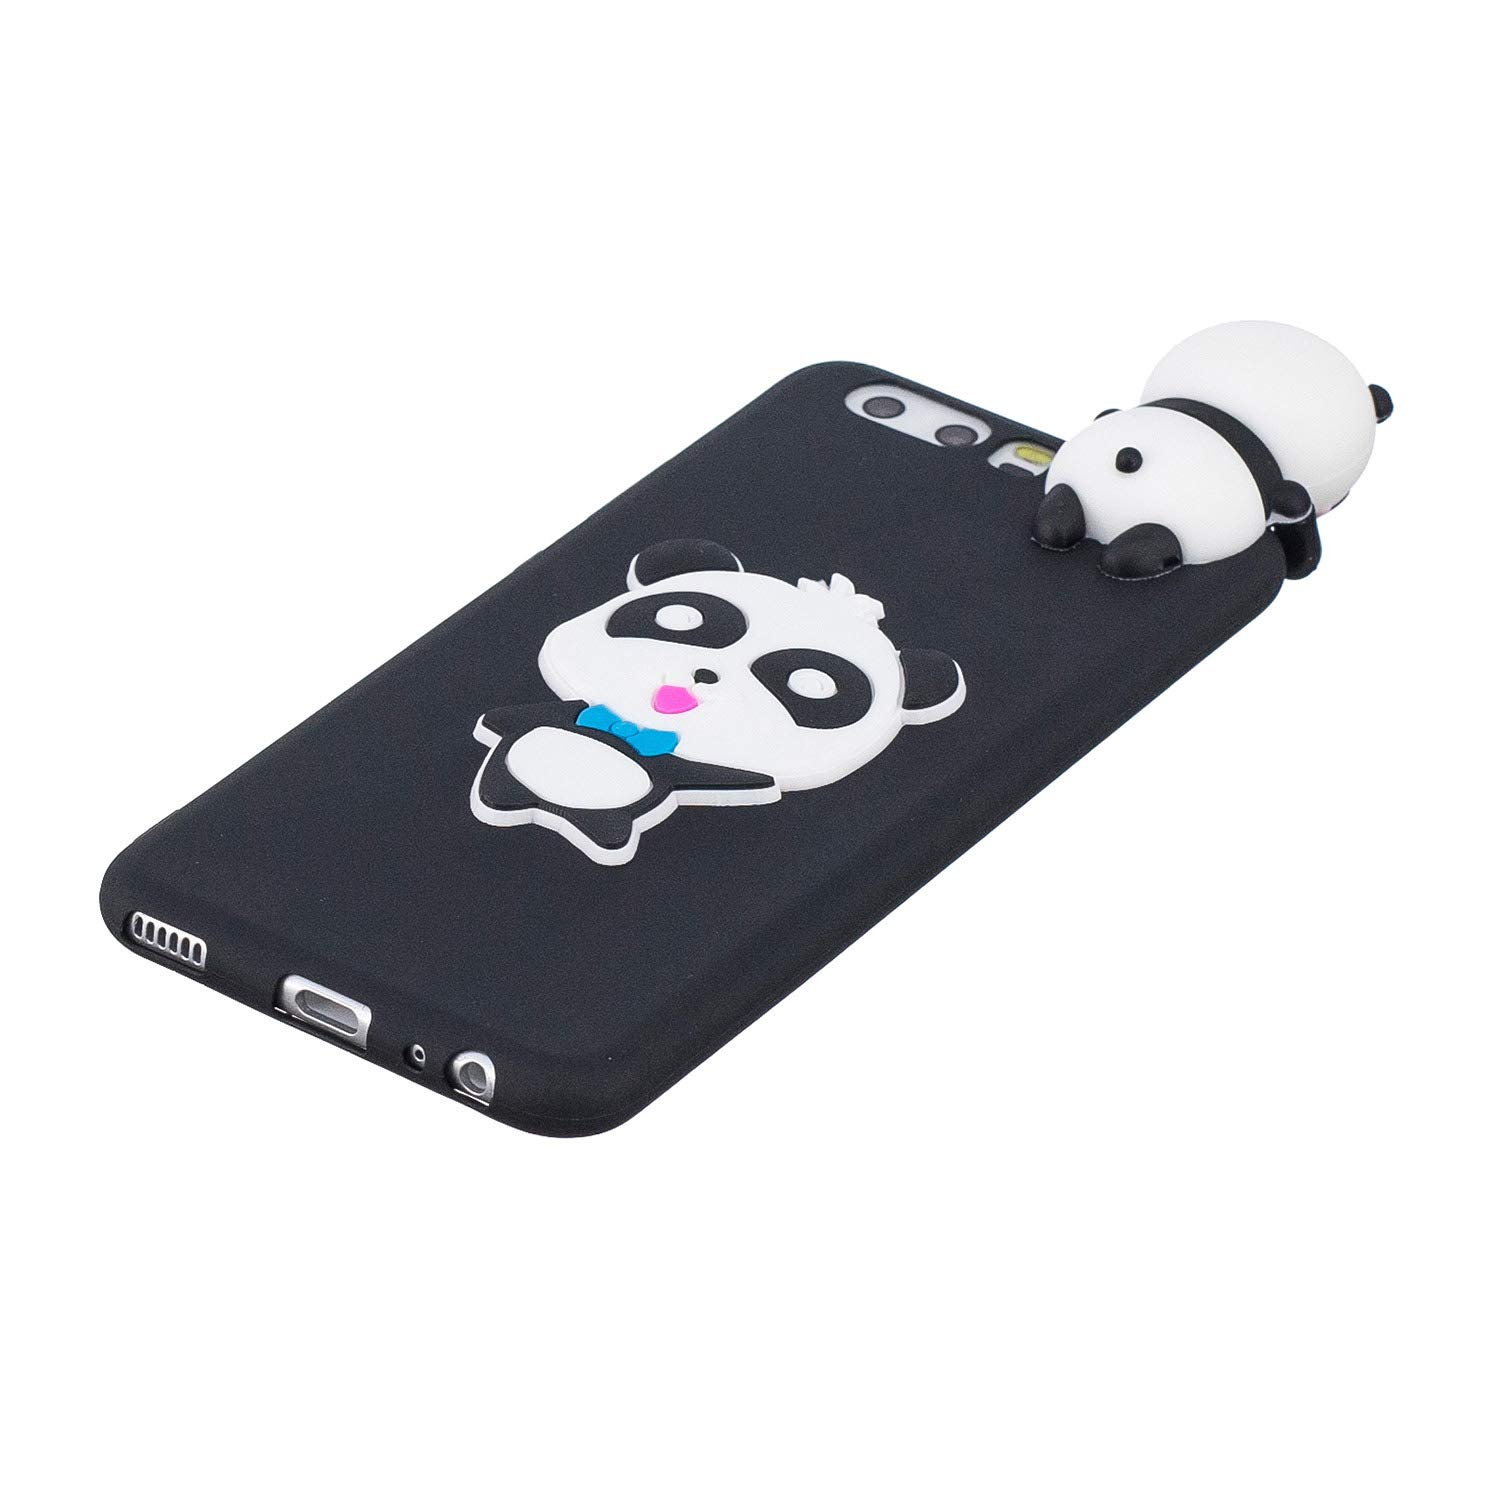 for Huawei P10 Silicone Case with Screen Protector,QFFUN 3D Cartoon [Panda] Pattern Design Soft Flexible Slim Fit Gel Rubber Cover,Shockproof Anti-Scratch Protective Case Bumper by QFFUN (Image #3)